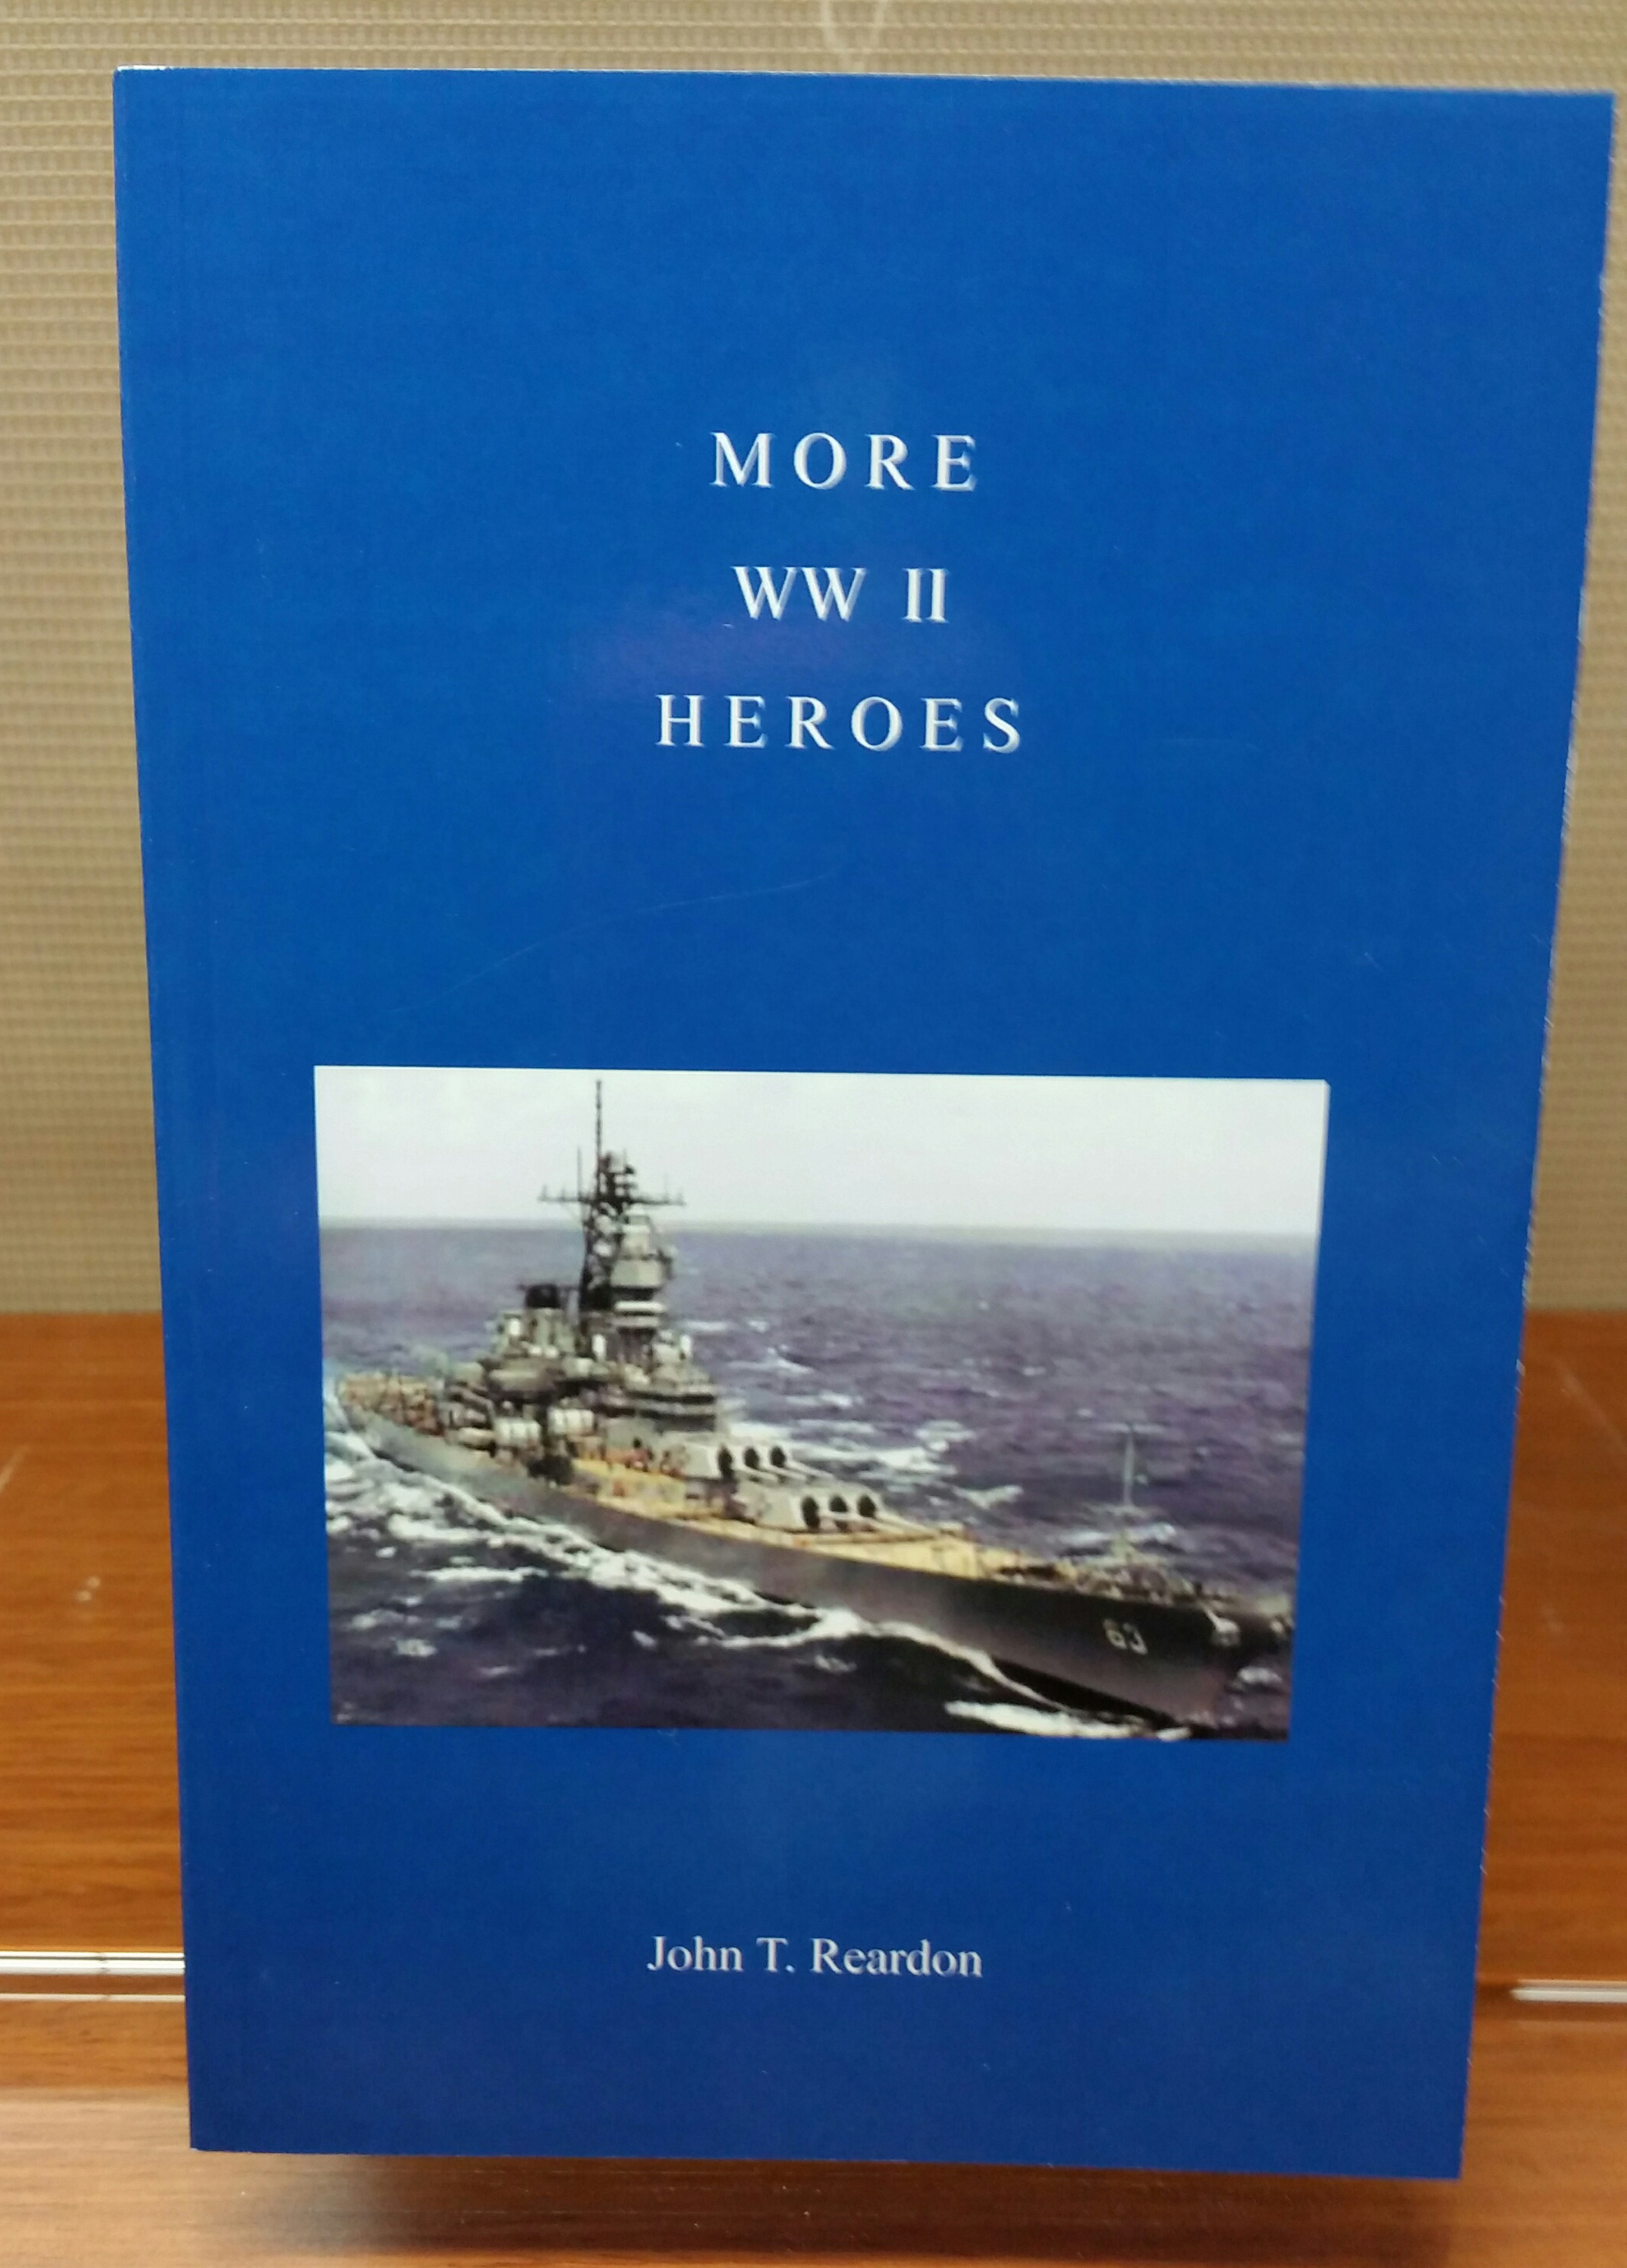 More WW II Heroes, by John T. Reardon, 2014, 142 pp. Prices reflect the cost of the book PLUS S&H fee of $3.00.